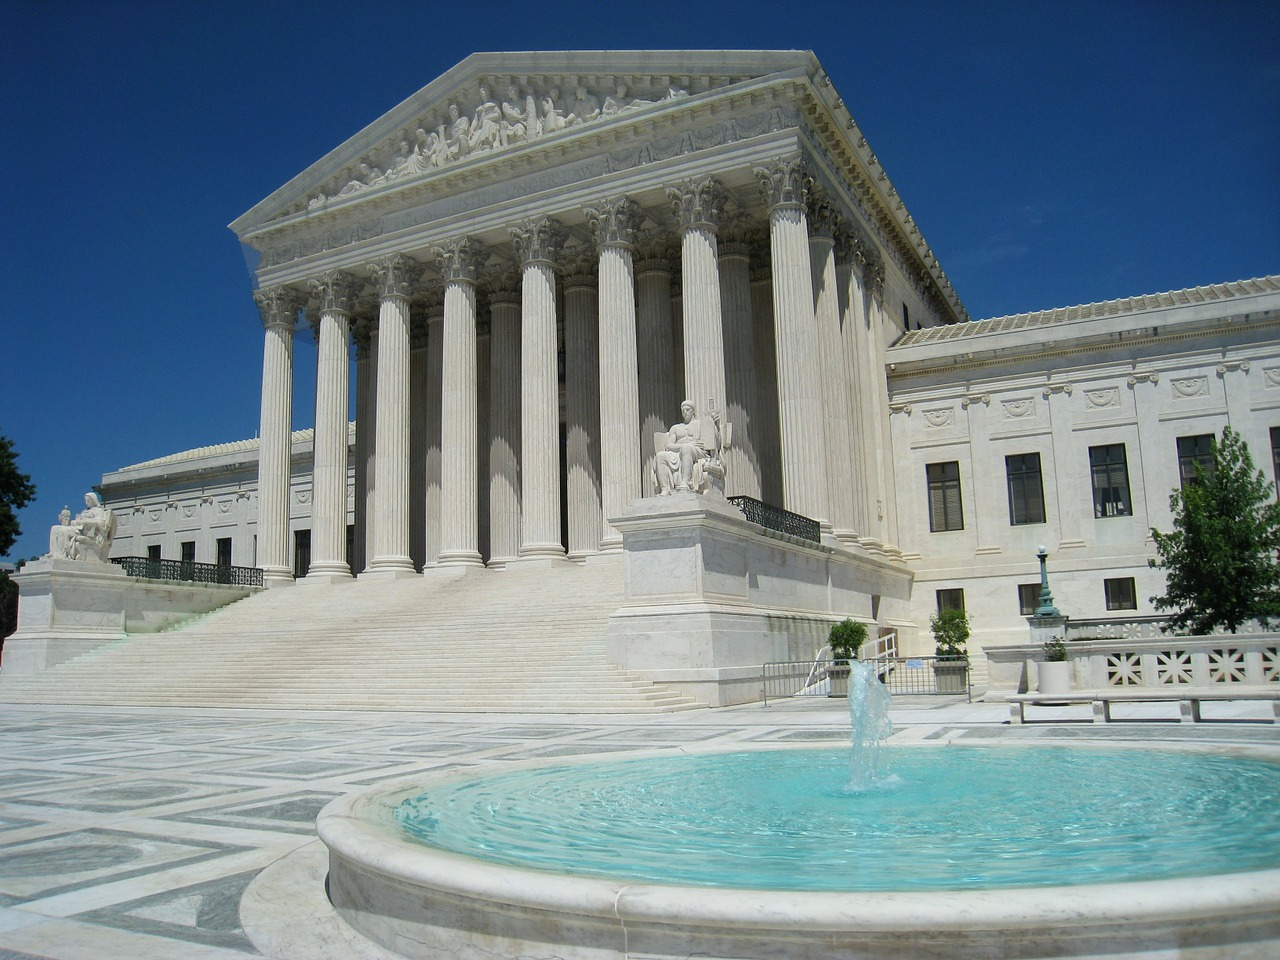 Supreme Court holds state sovereign immunity recognized by Constitution, overturning precedent